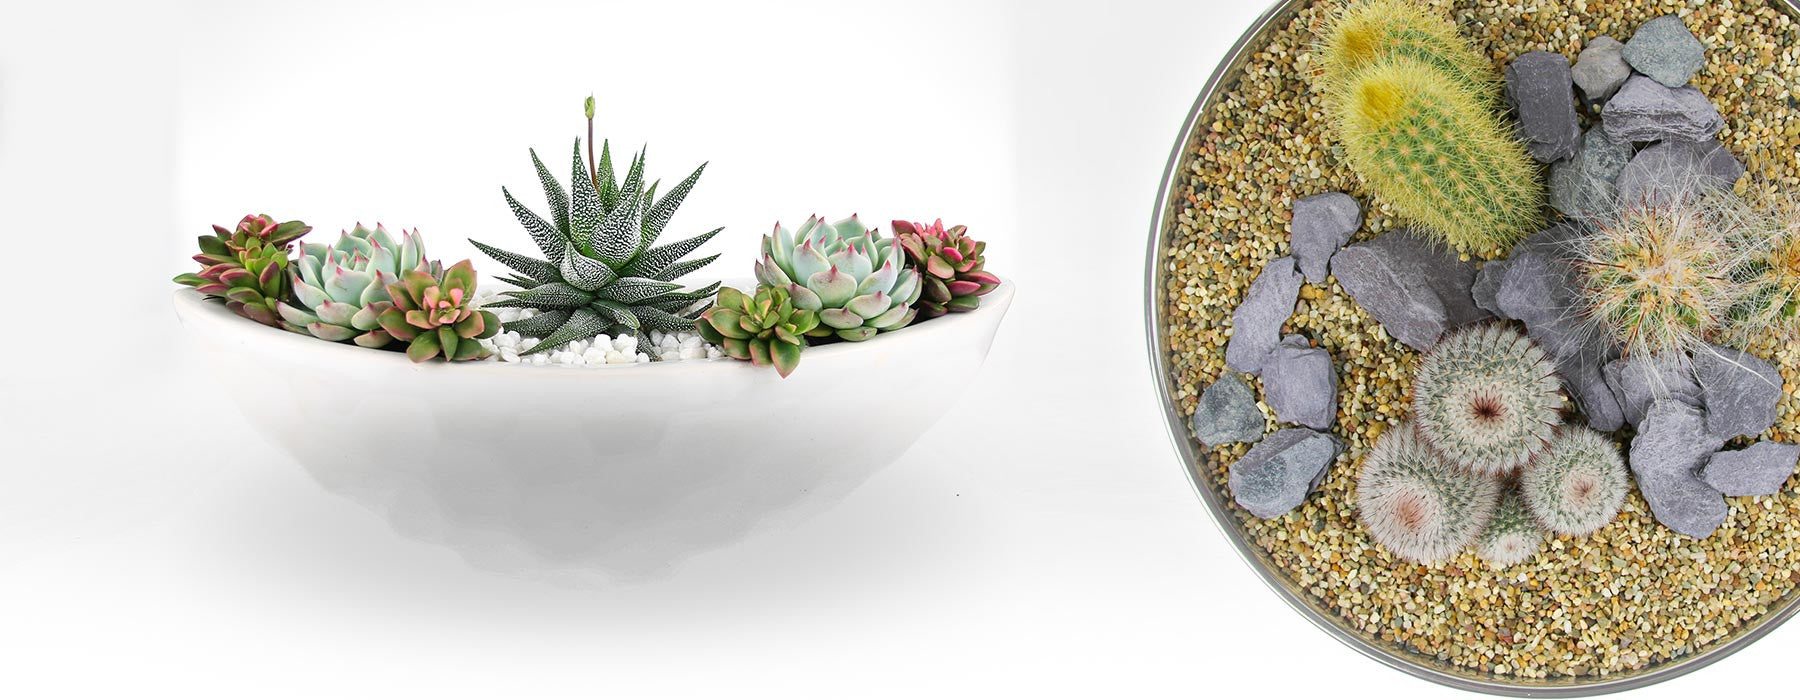 Indoor Planters In The Uk For Succulents Cacti And Air Plants The Art Of Succulents